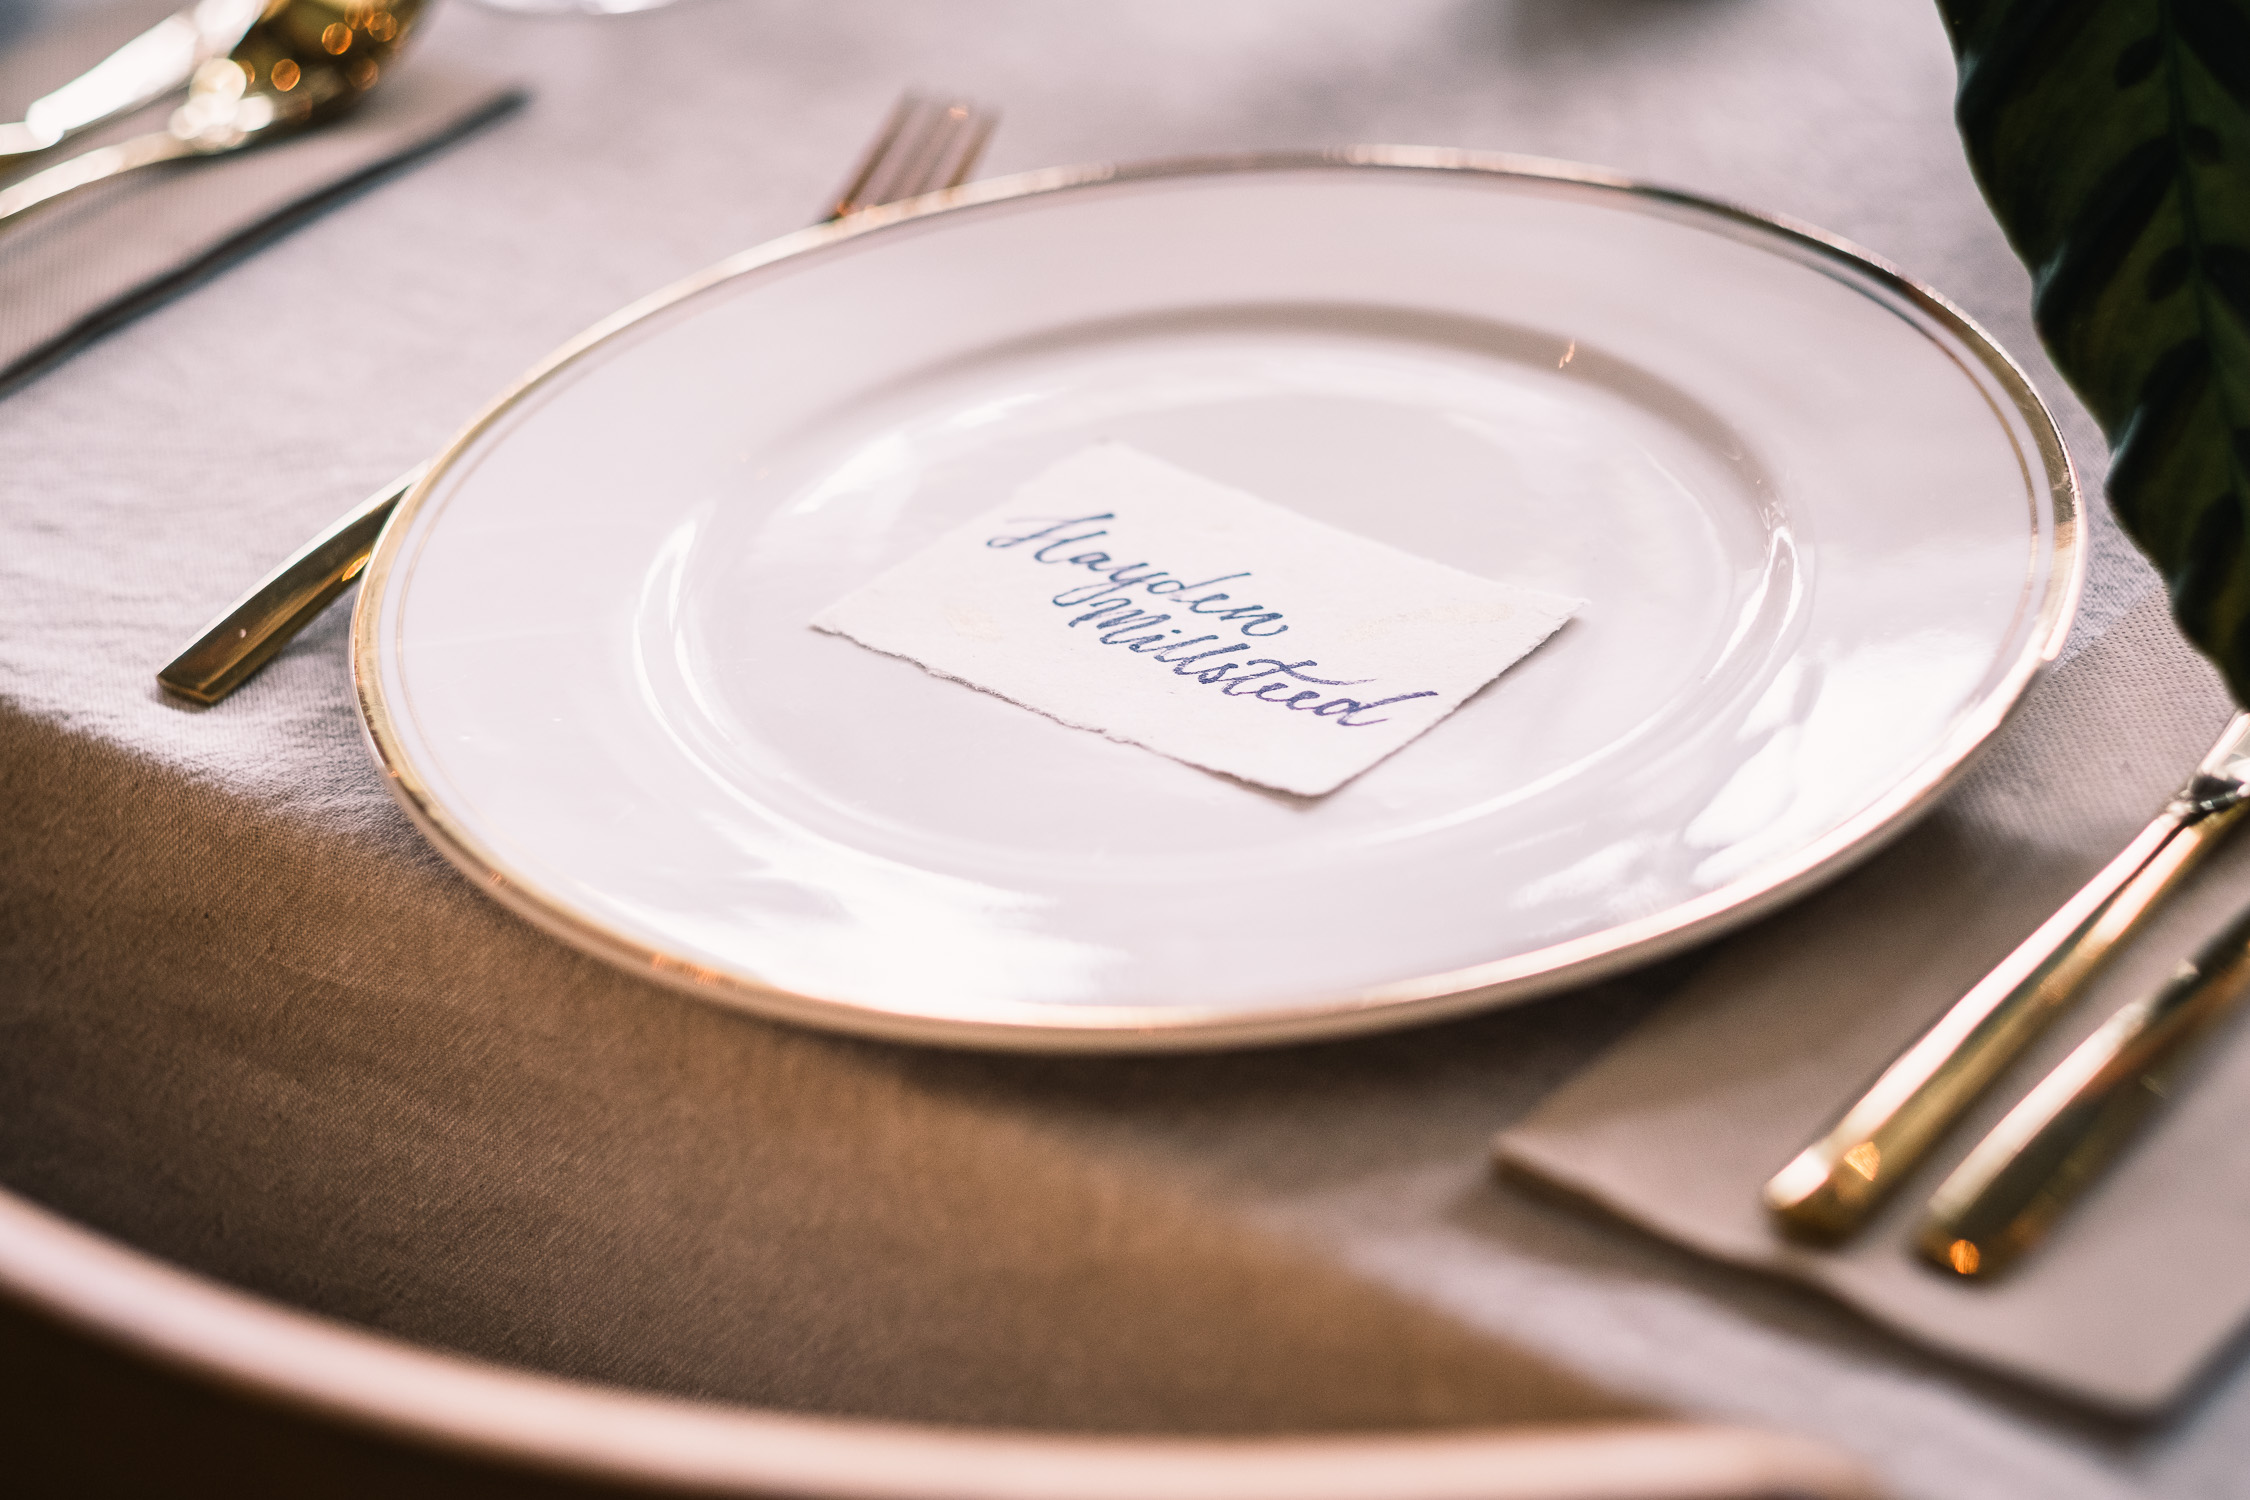 Melbourne Sunnystones Camp Wedding - personal china dishes and calligraphy name cards